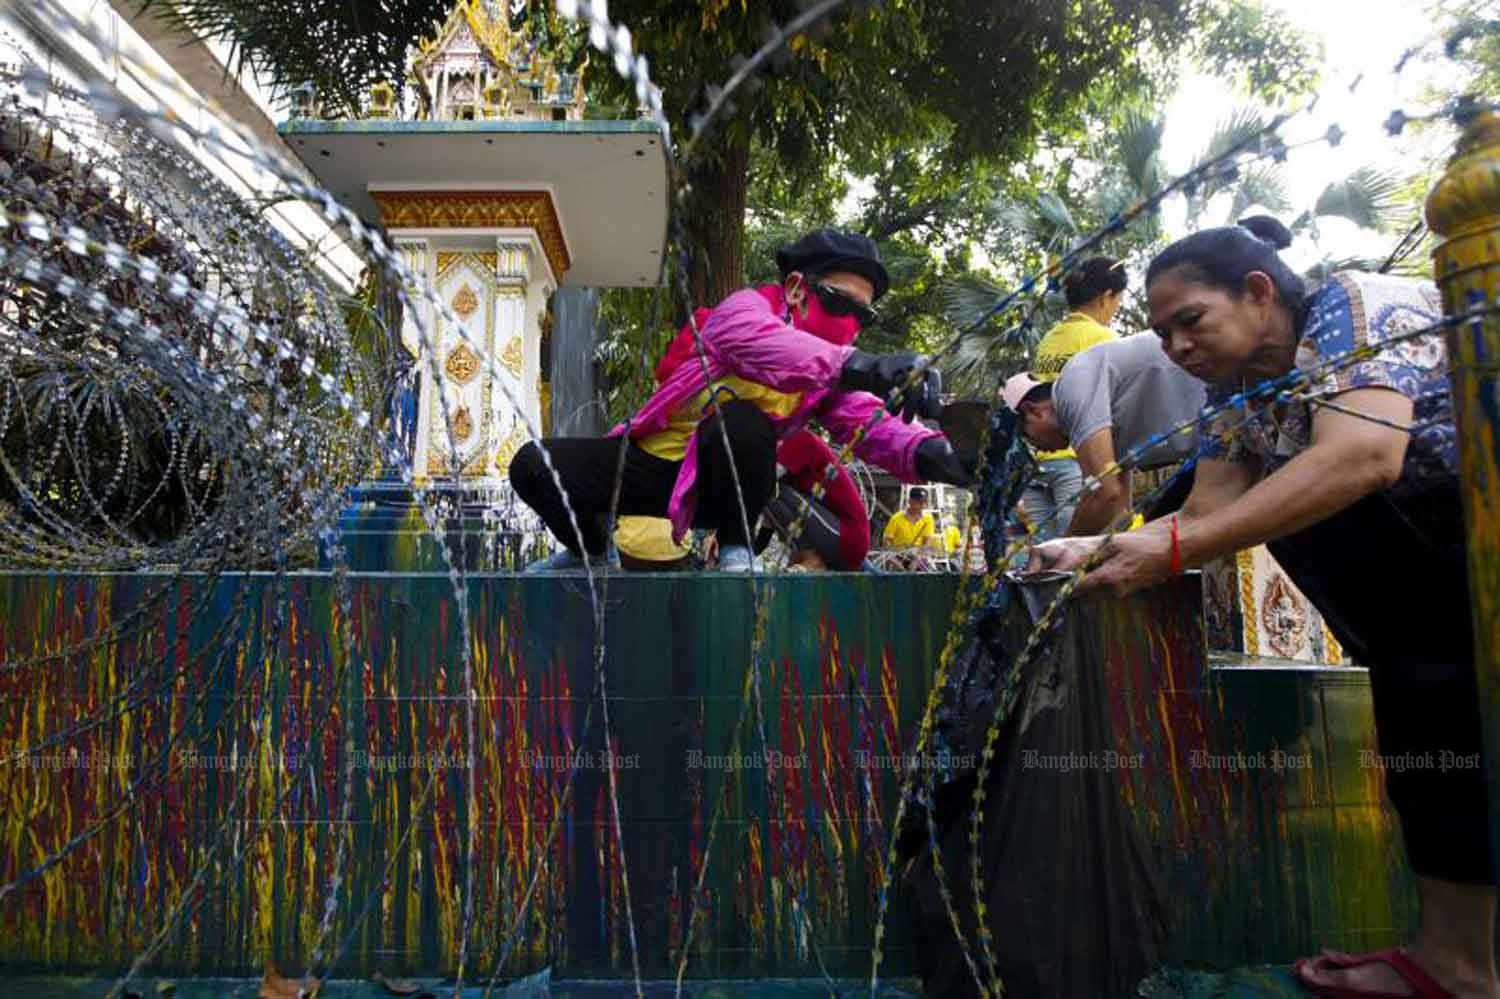 Volunteers clean the shrine at the gate to Royal Thai Police Headquarters in Pathumwan district, Bangkok, on Friday. (Photo: Pattarapong Chatpattarasill)